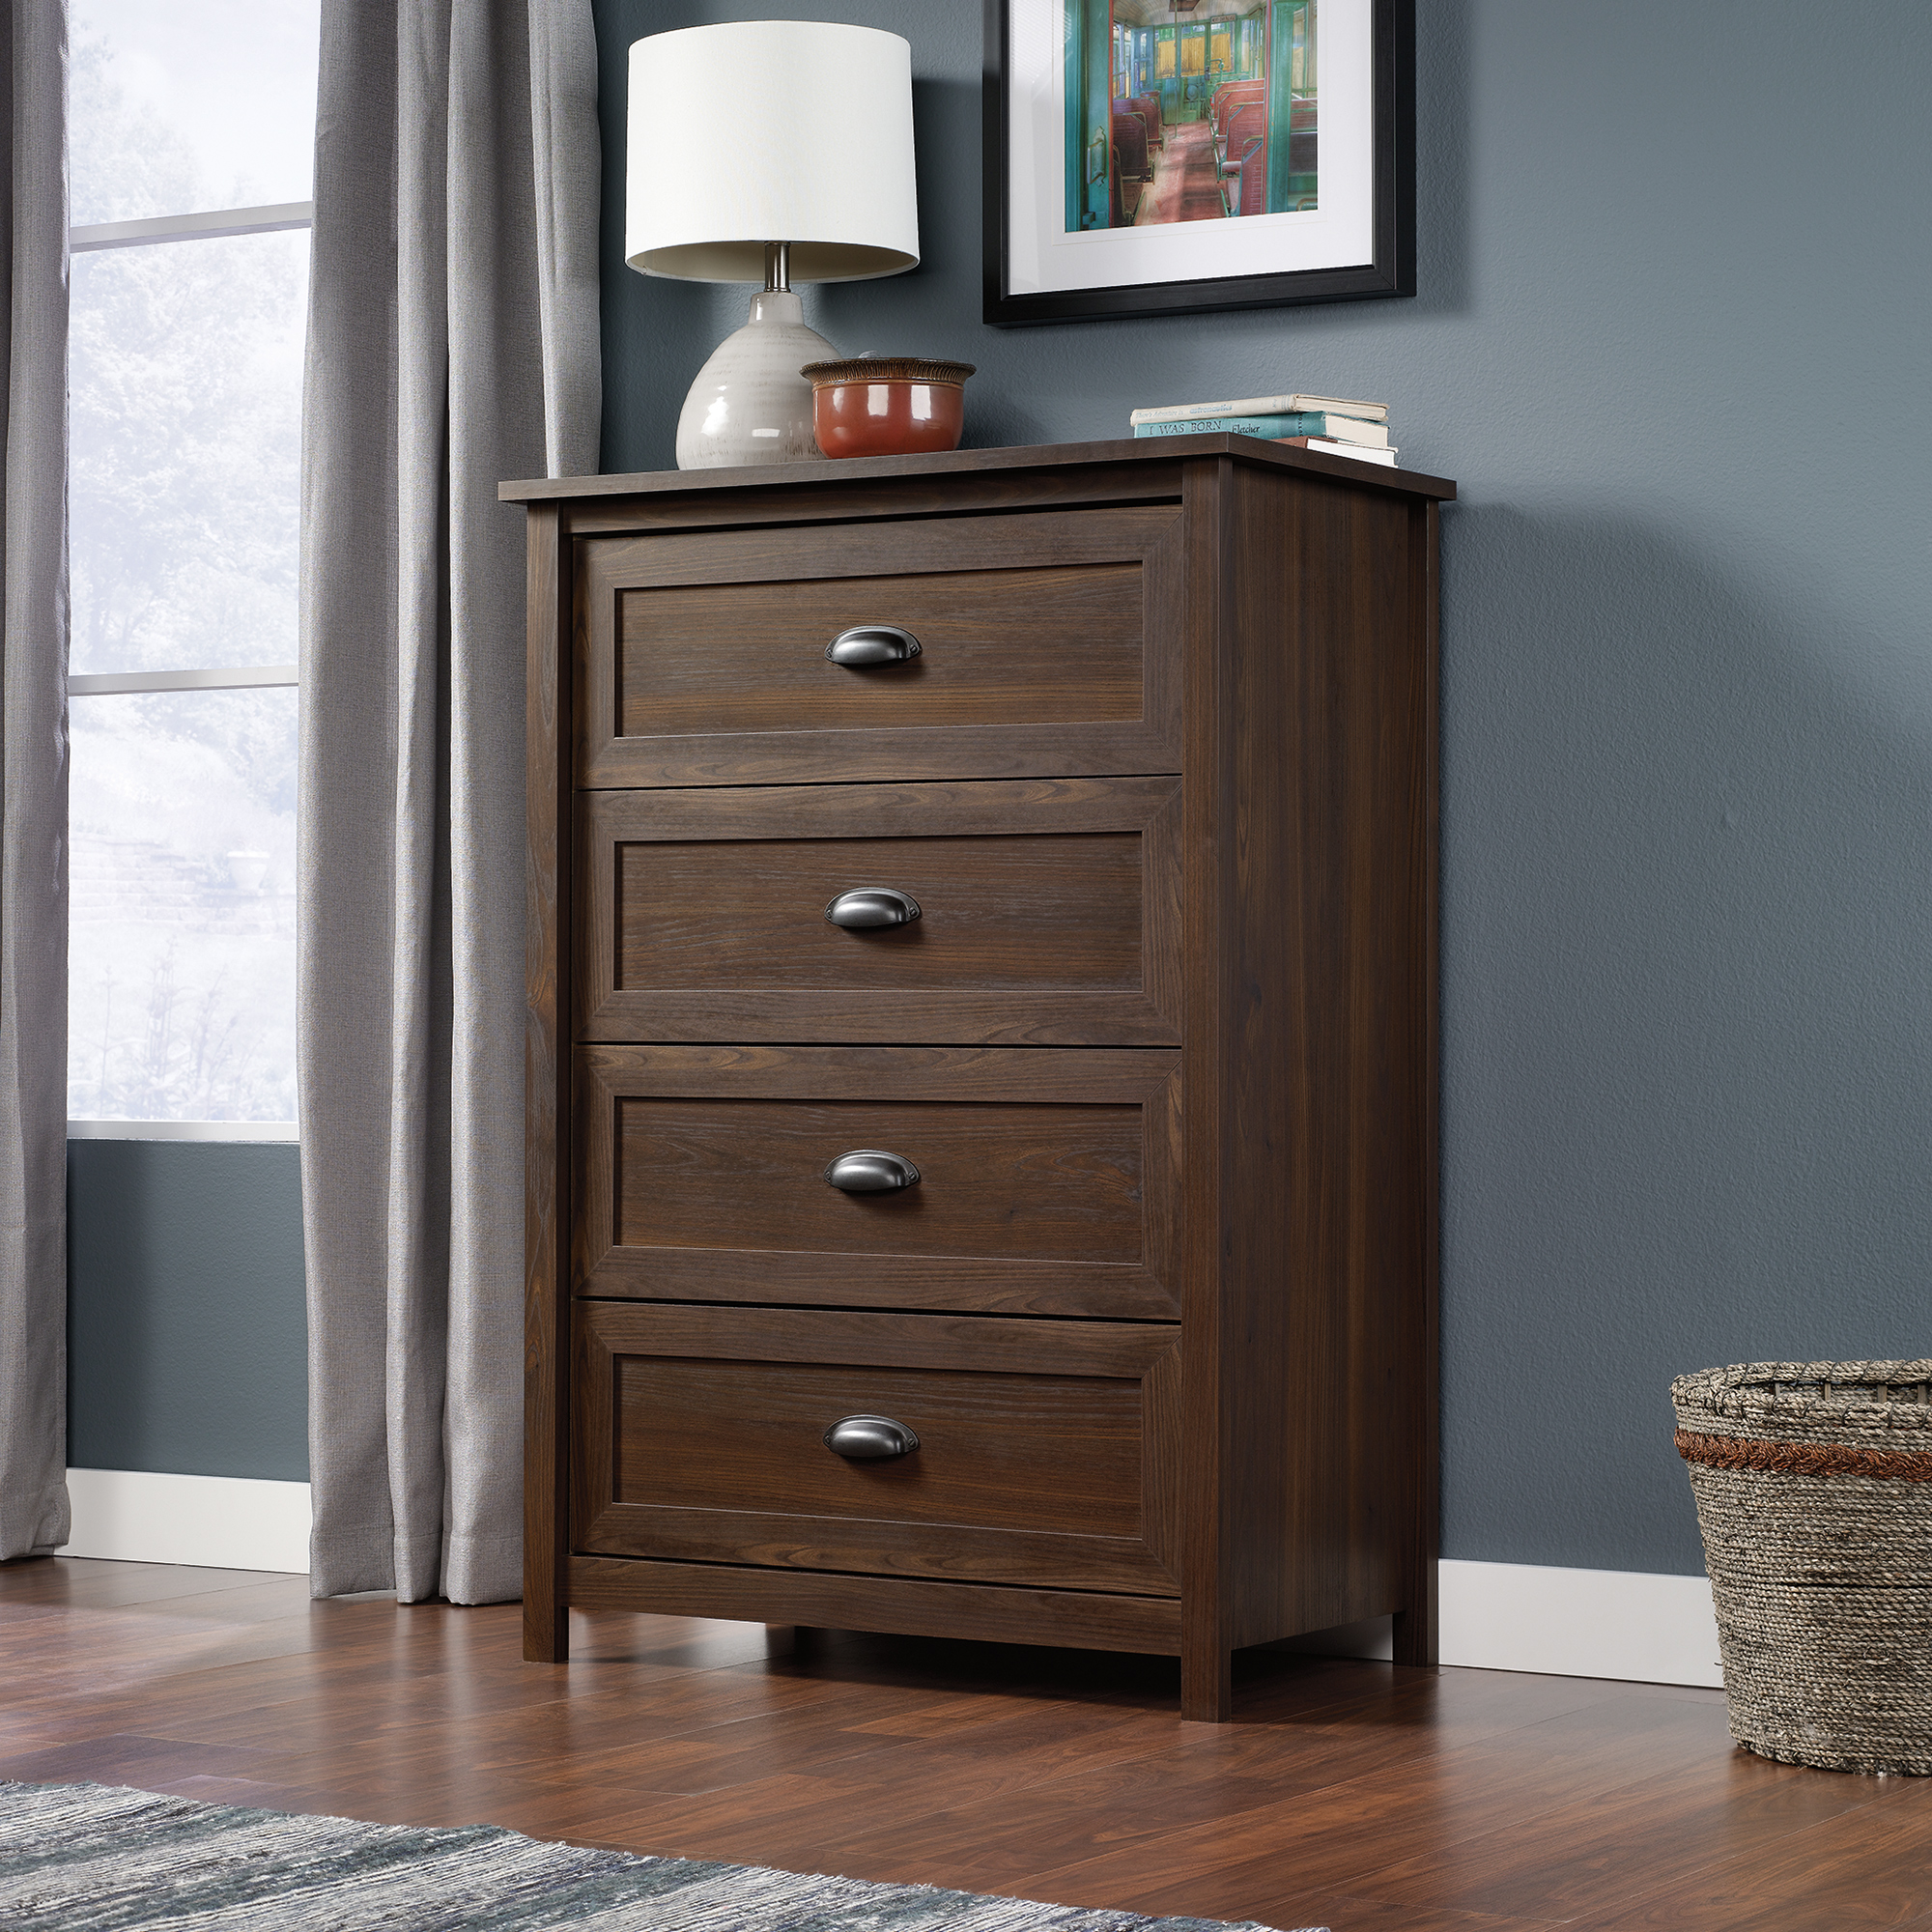 Unique Furniture Design Cabinet with 4 Drawer Dresser for Bedroom Ideas: Nightlamp Above 4 Drawer Dresser